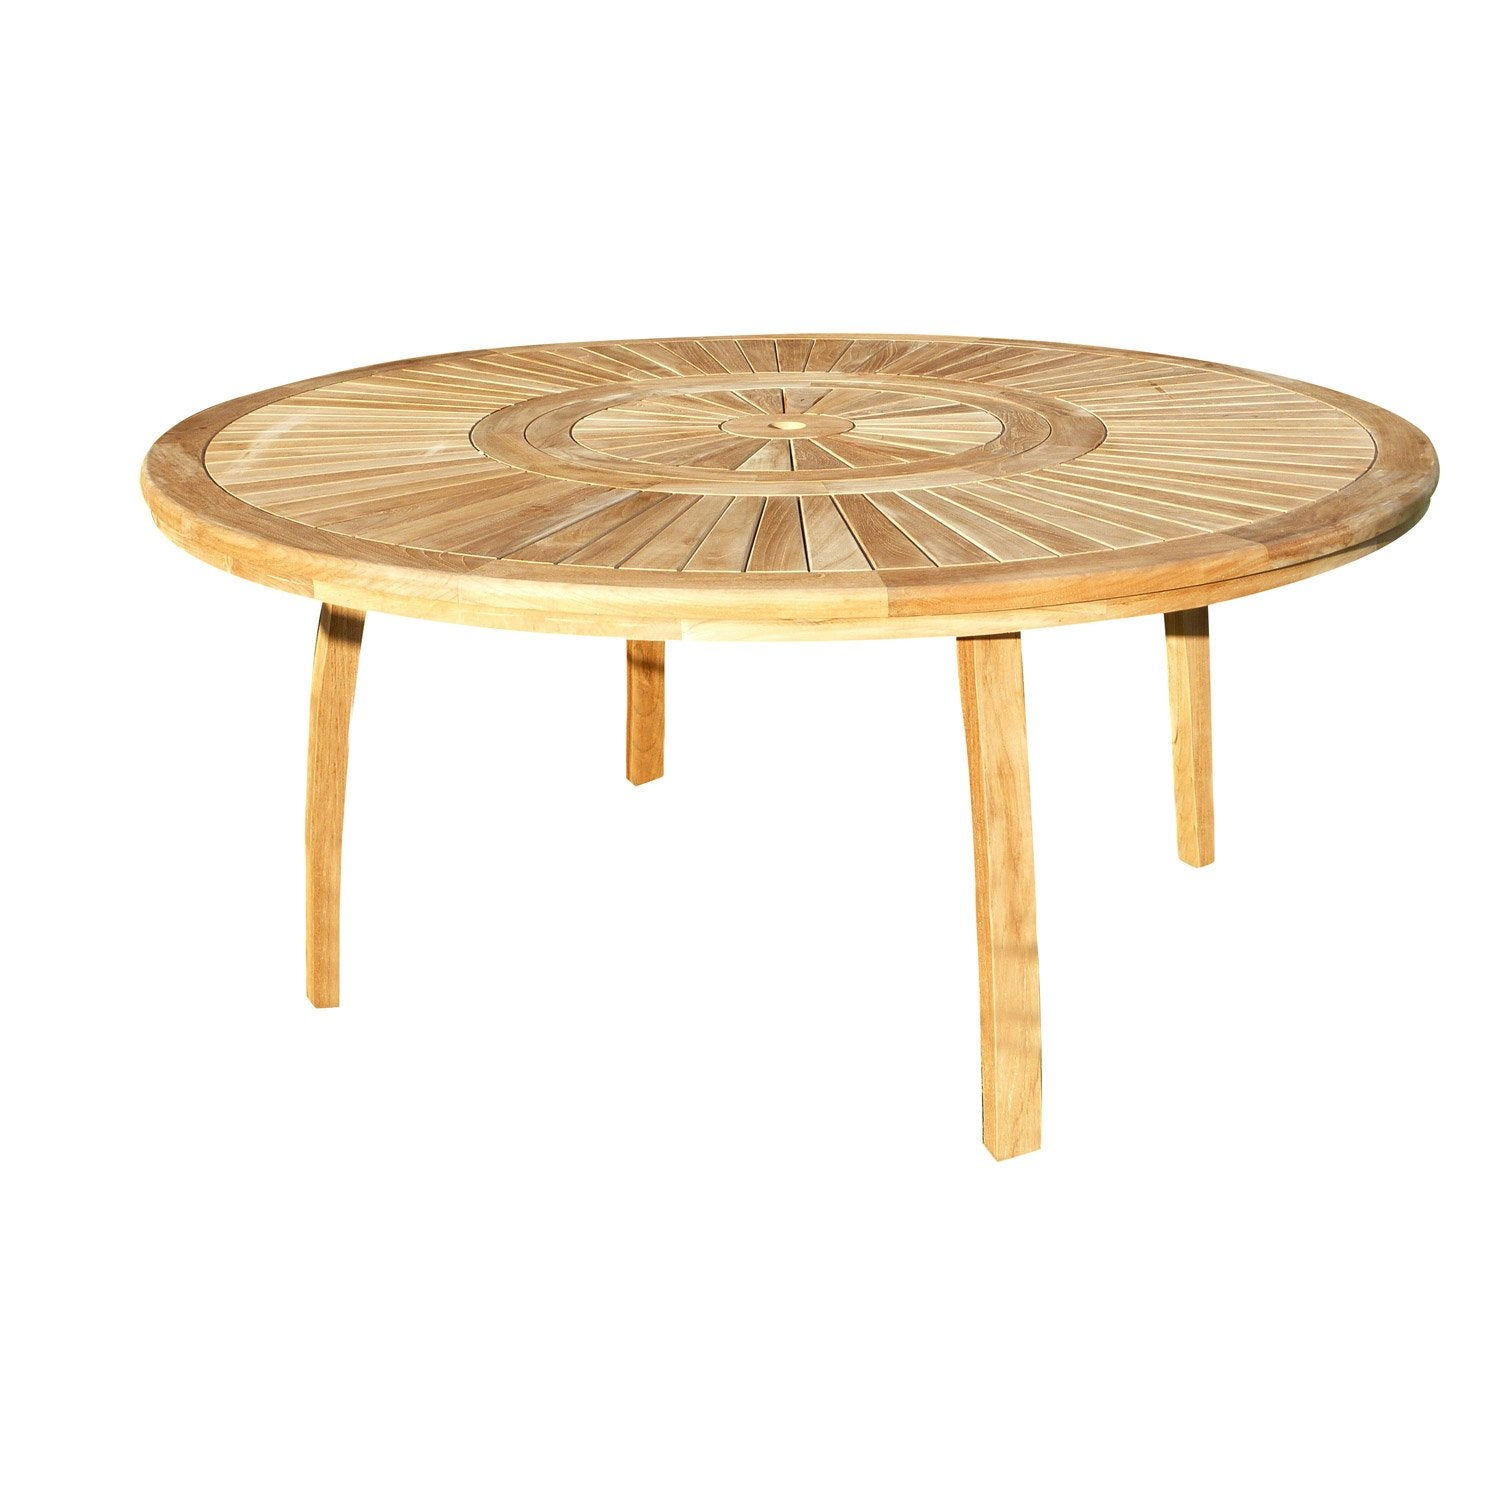 Table de jardin orion ronde naturel 8 personnes leroy merlin for Table exterieur 2 personnes